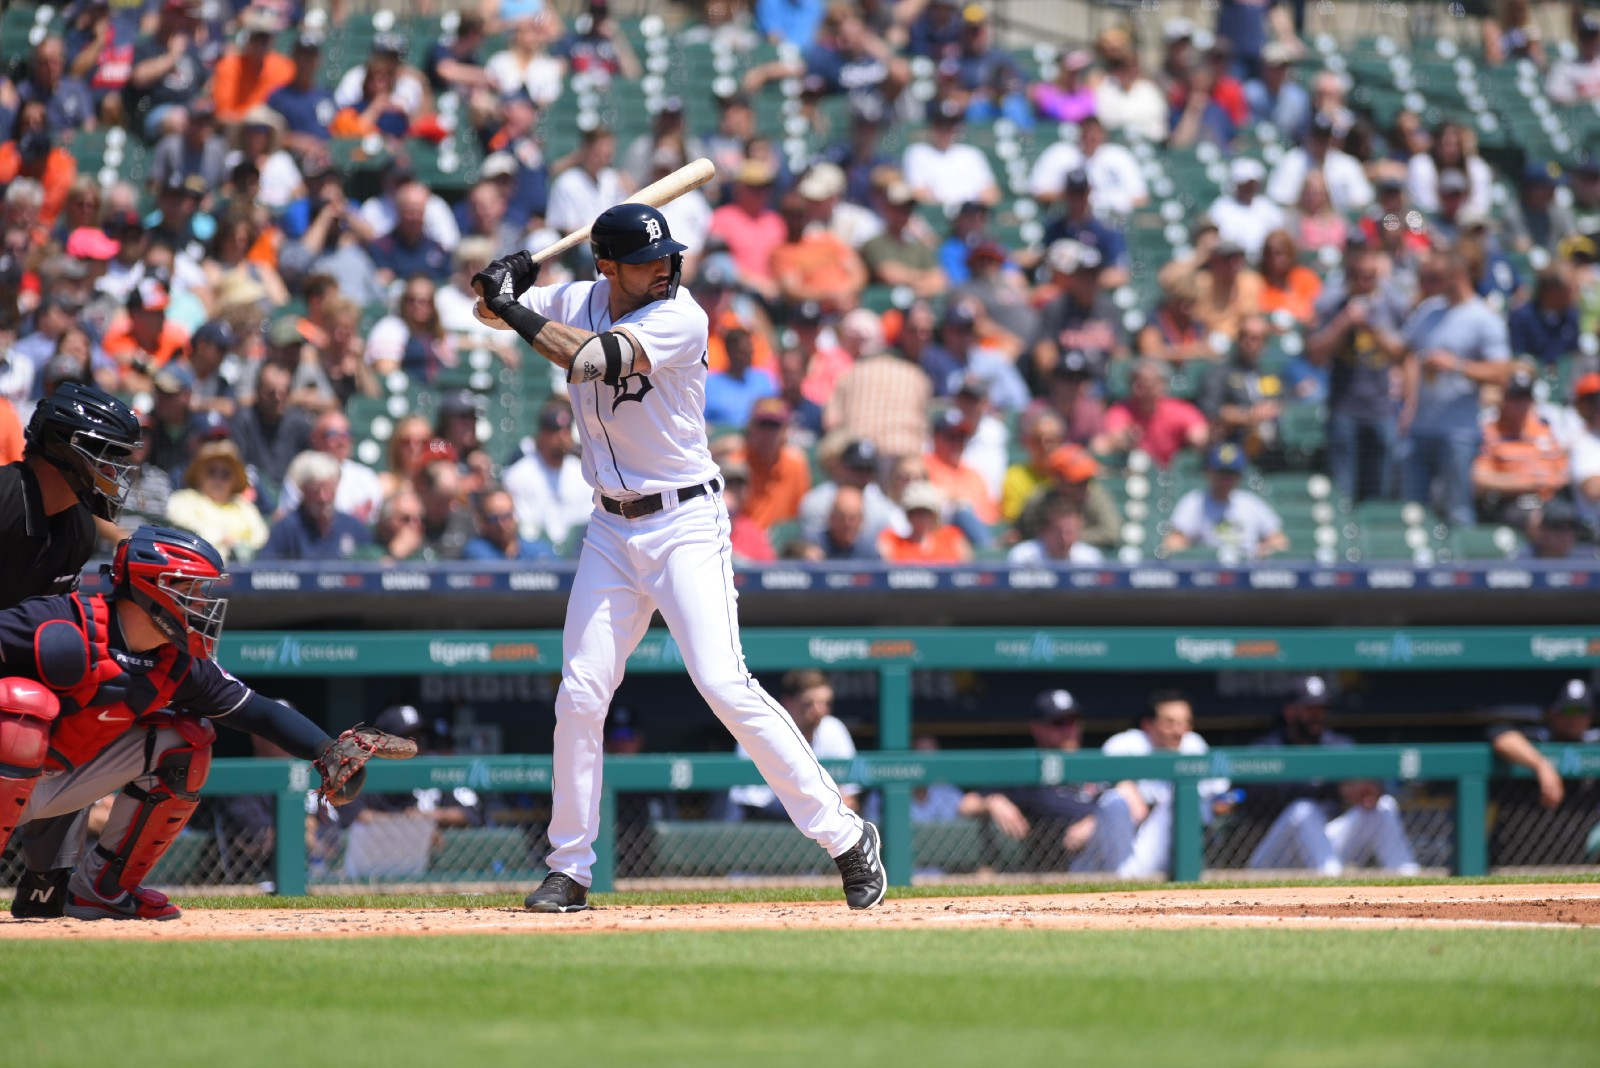 Nicholas Castellanos Named a Finalist for Silver Slugger Award